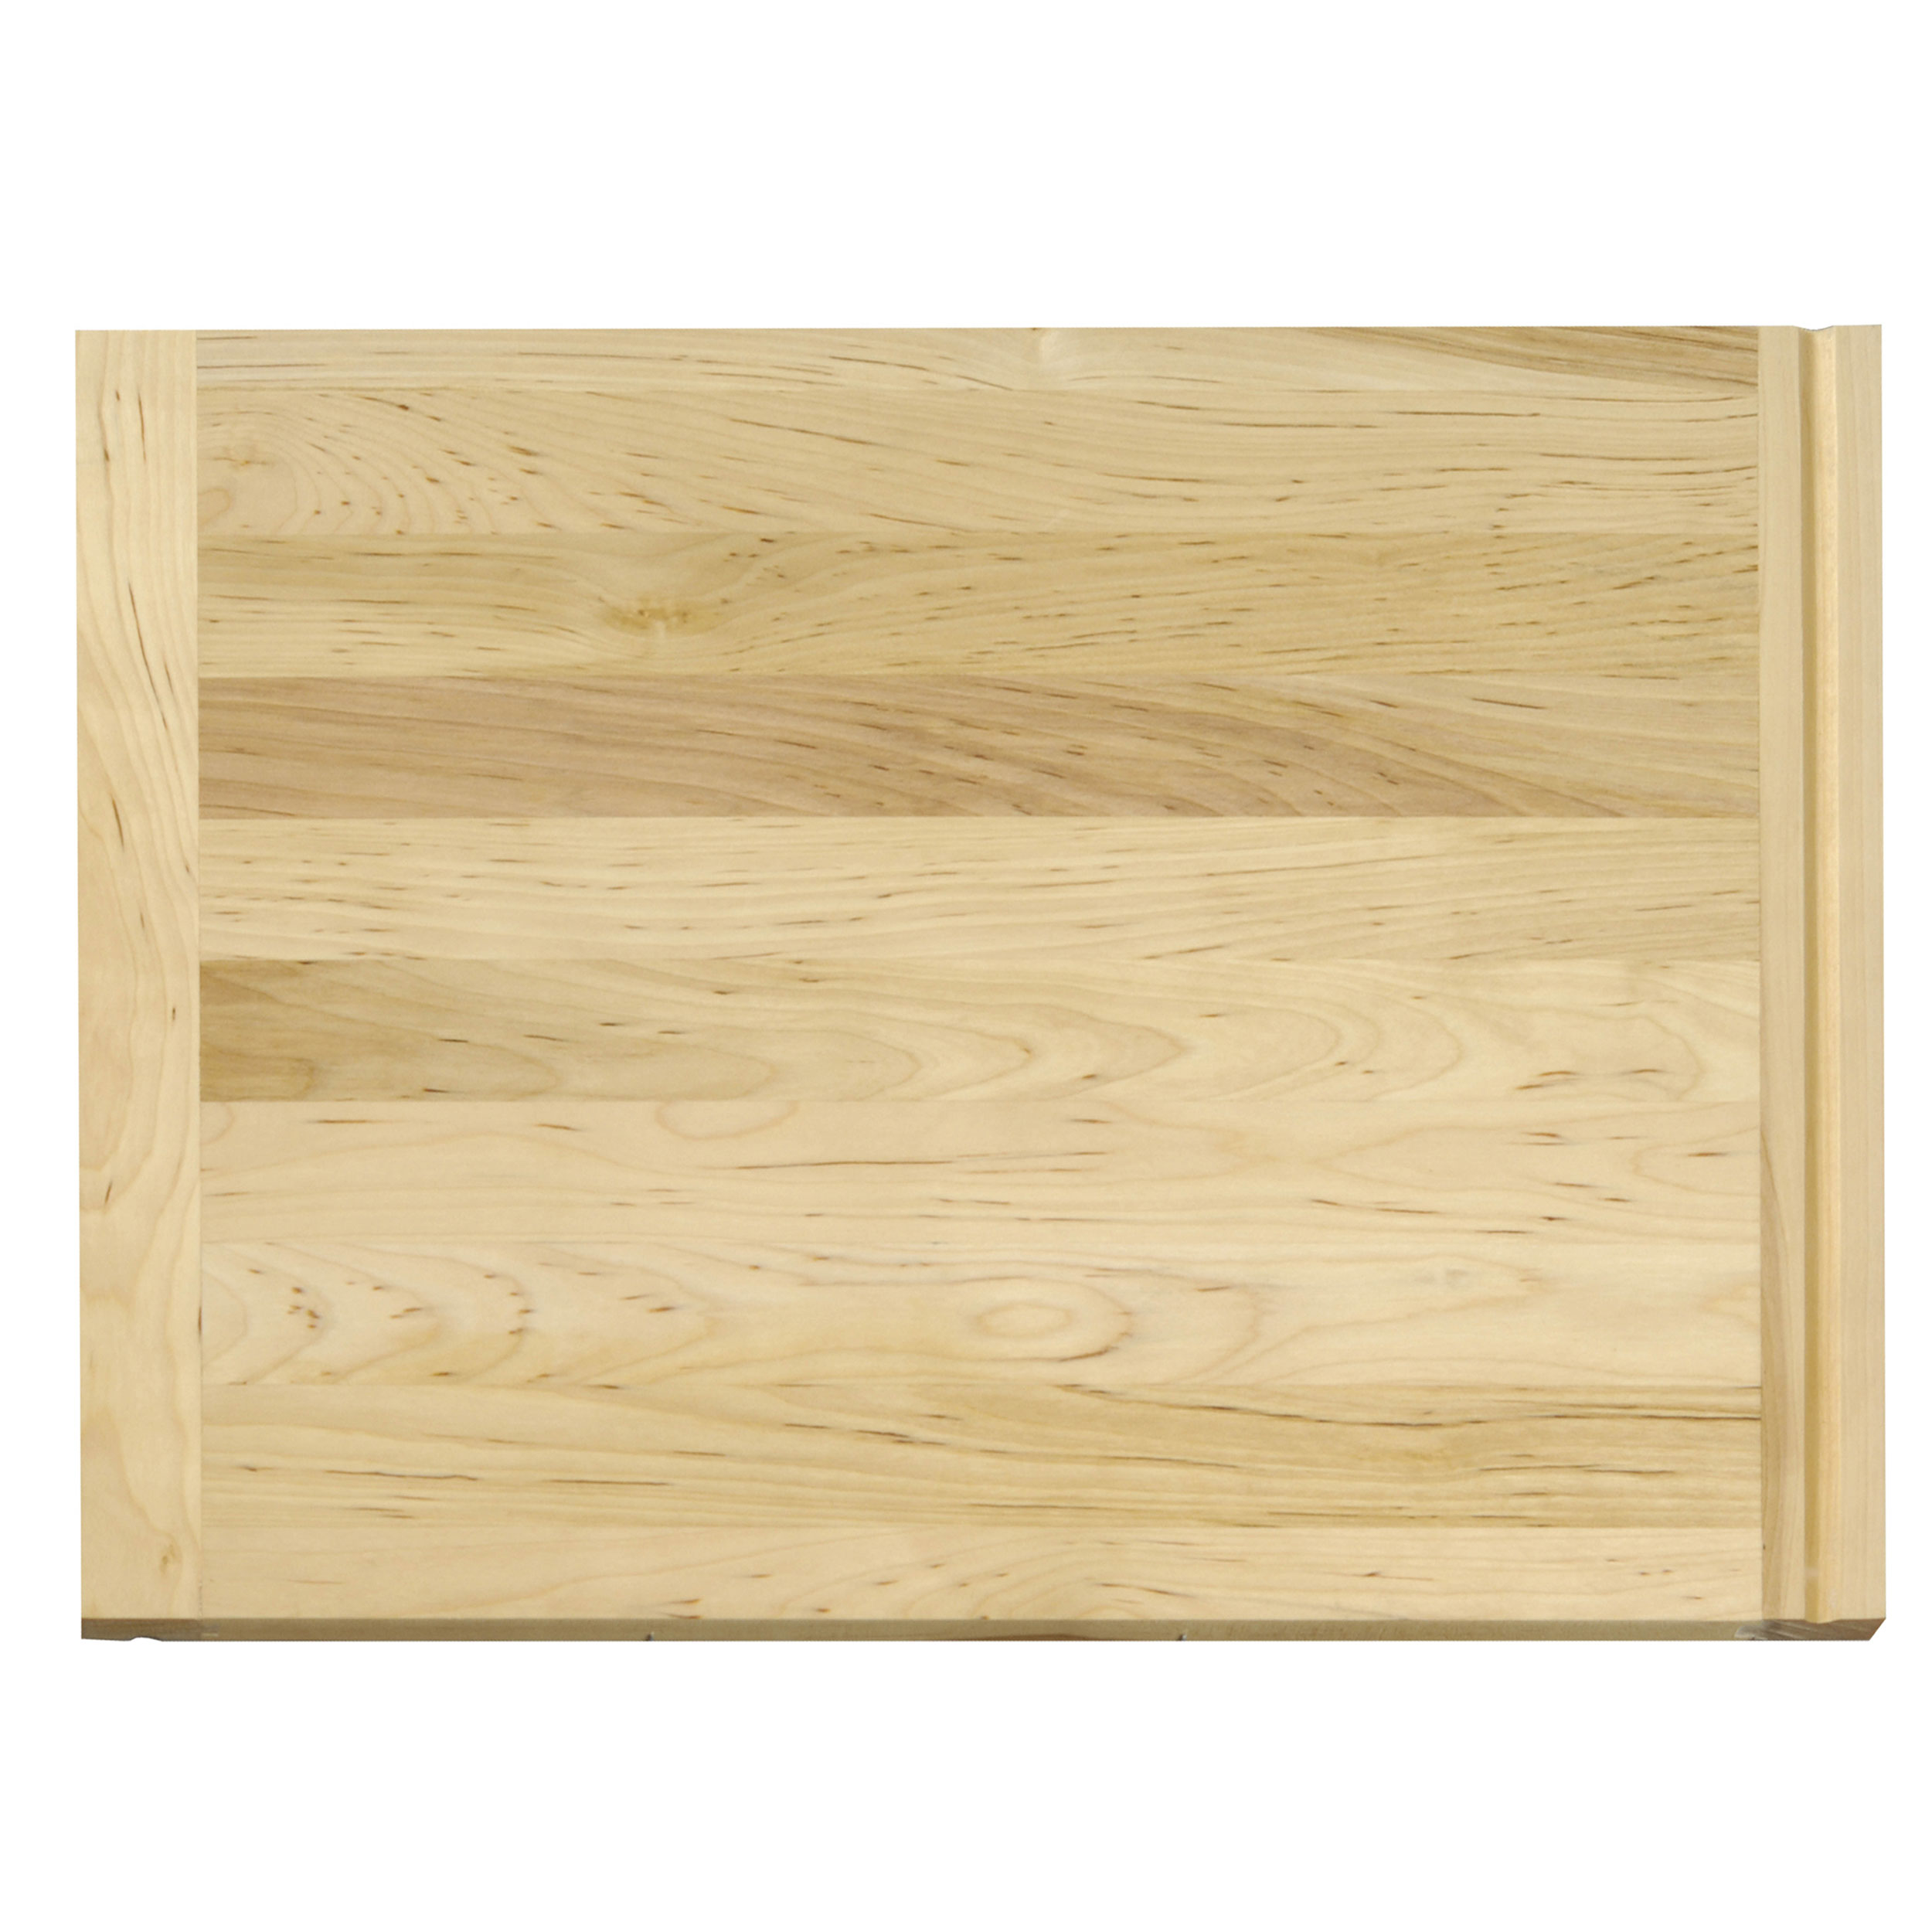 16 X 22 inch X 3/4 inch thick Hardwood Cutting Board with Routed Pull-Out